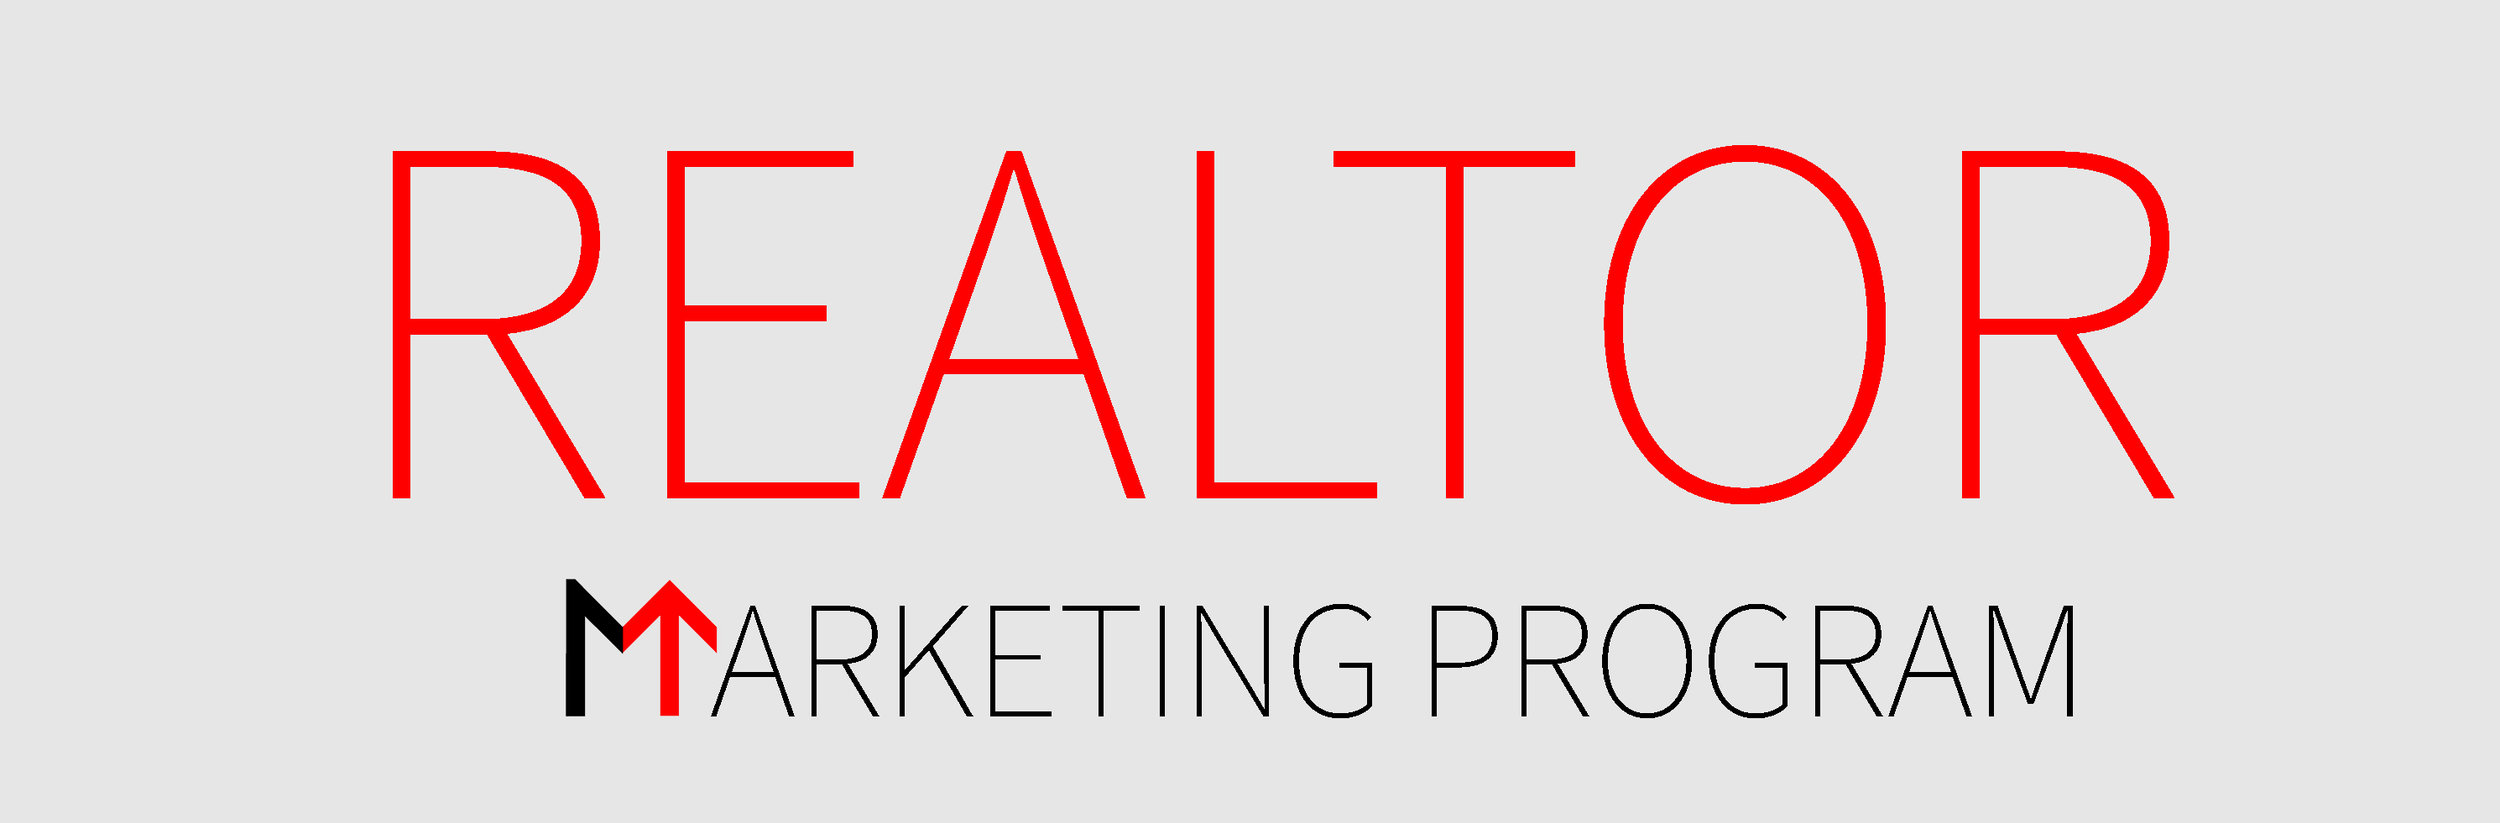 Realtor Marketing Program Front Image grey.jpg